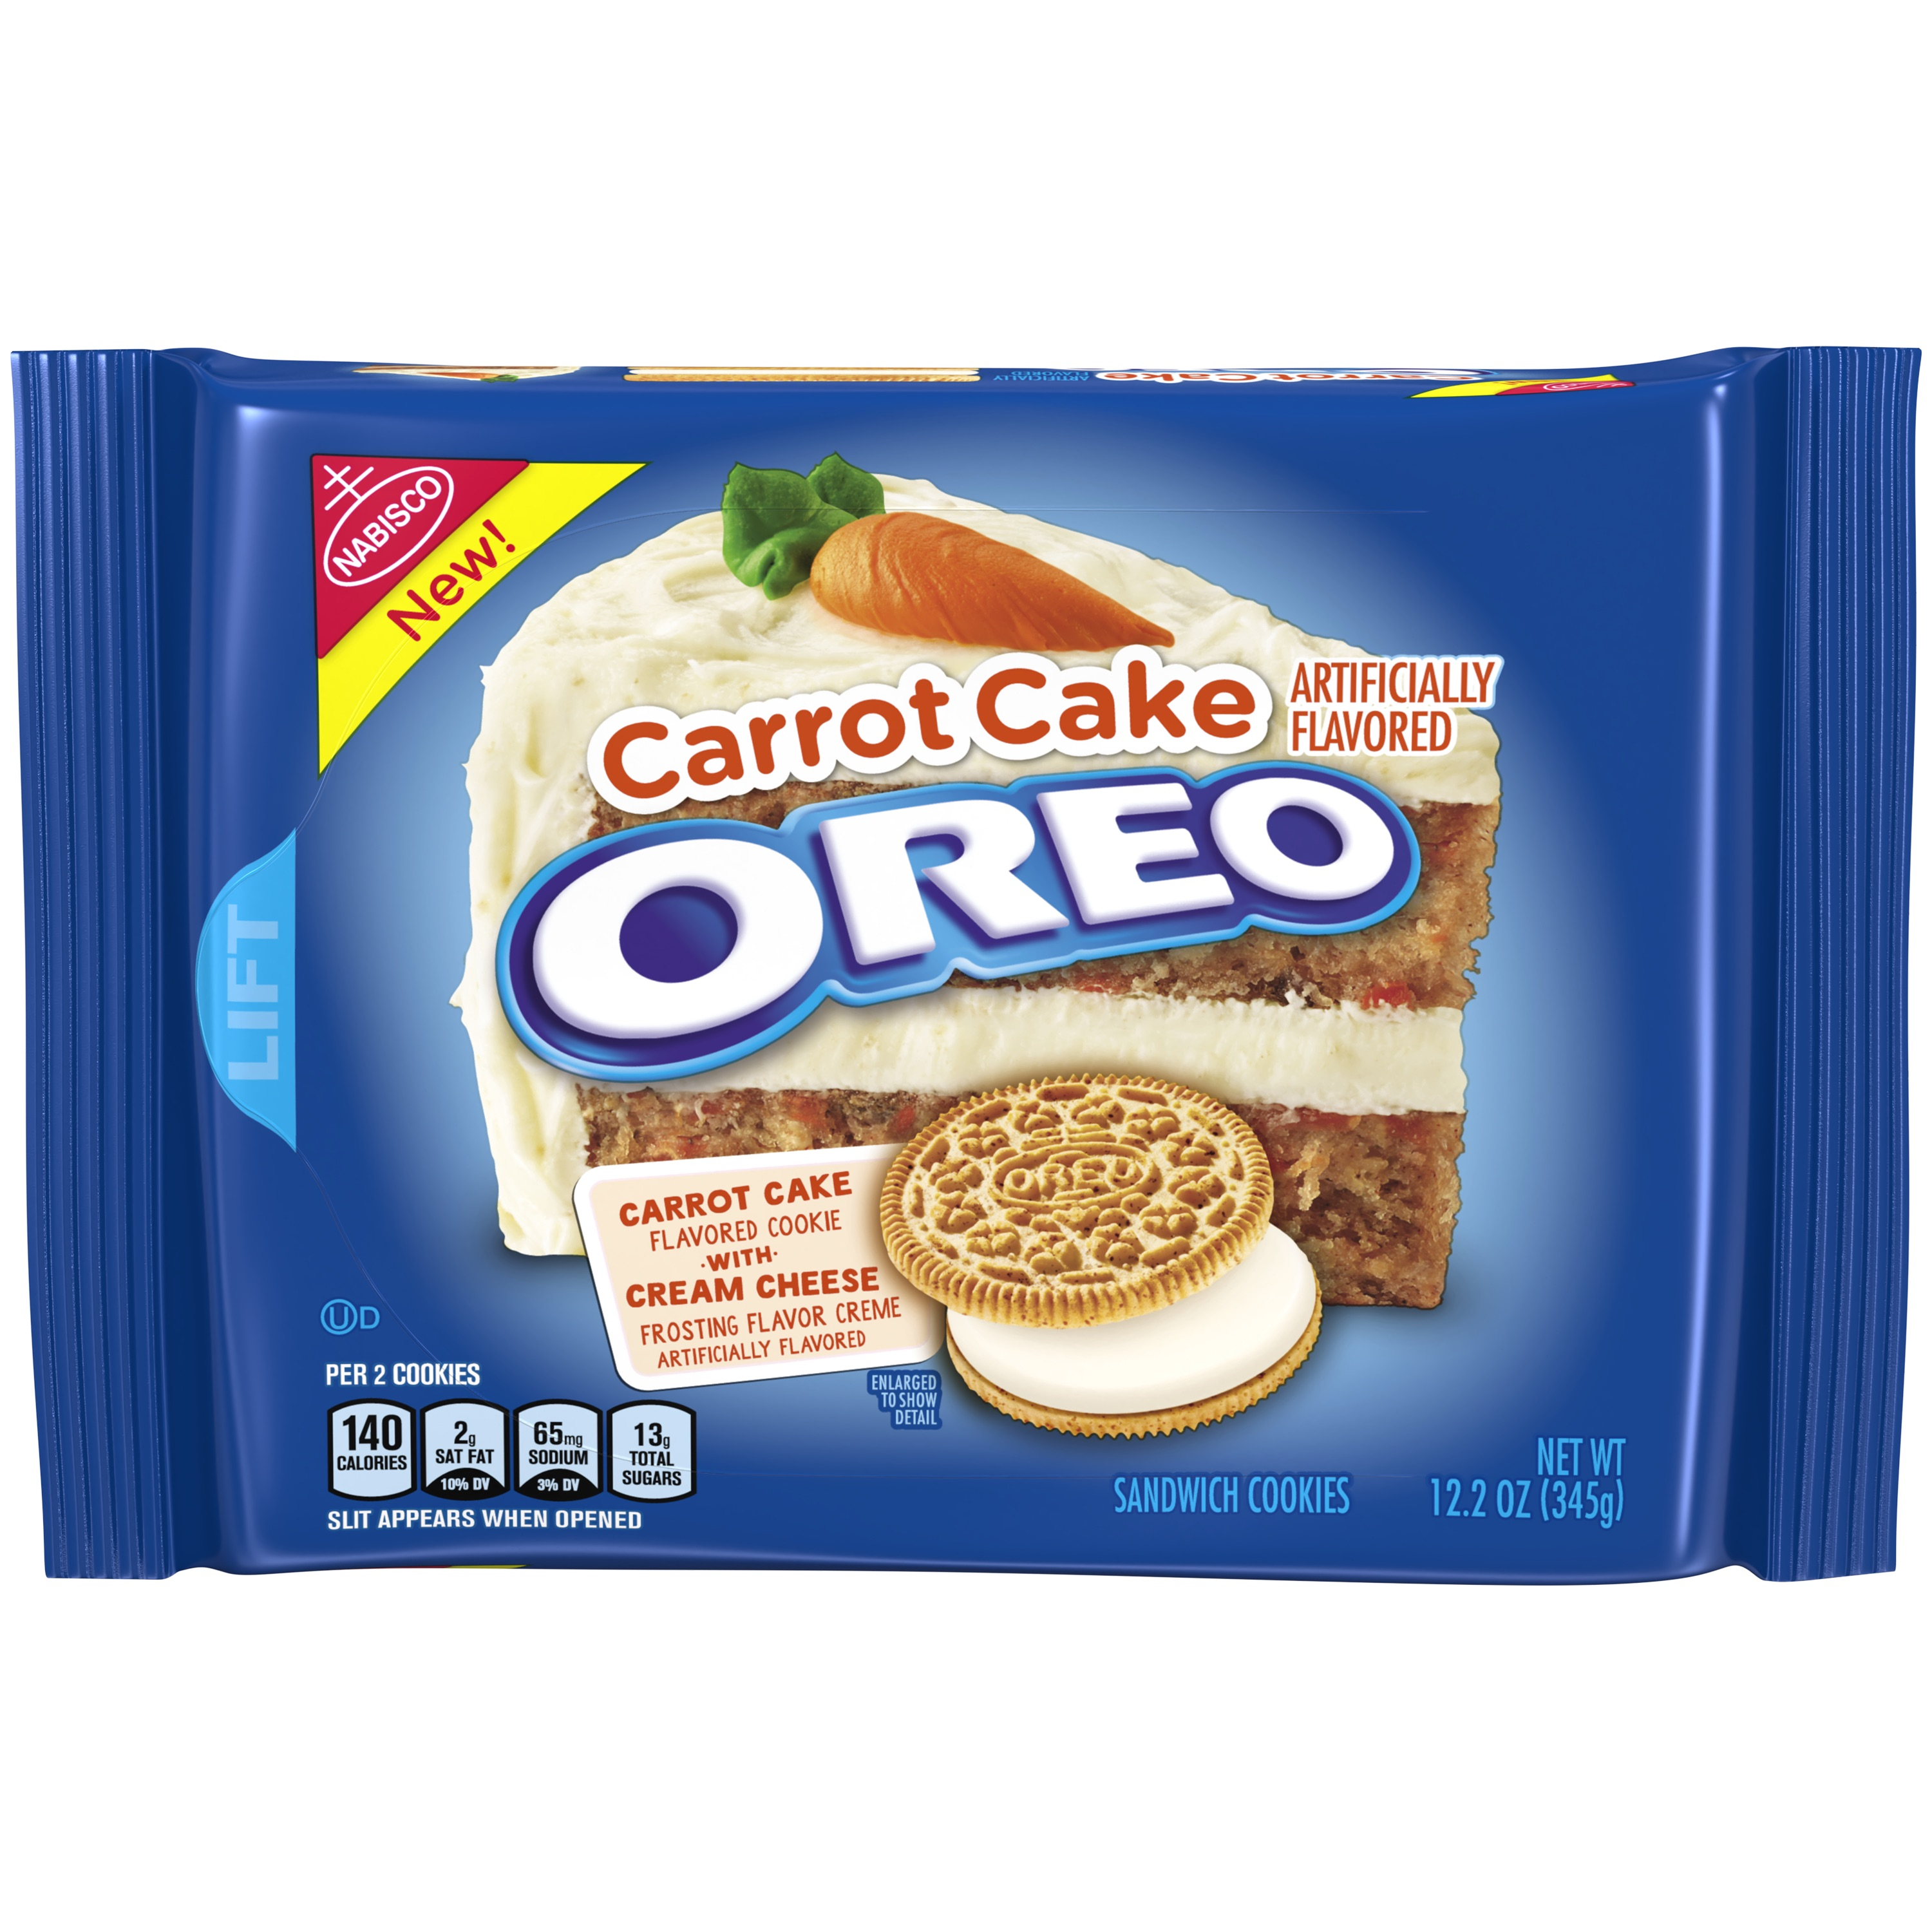 Carrot Cake Flavored Oreo Cookies